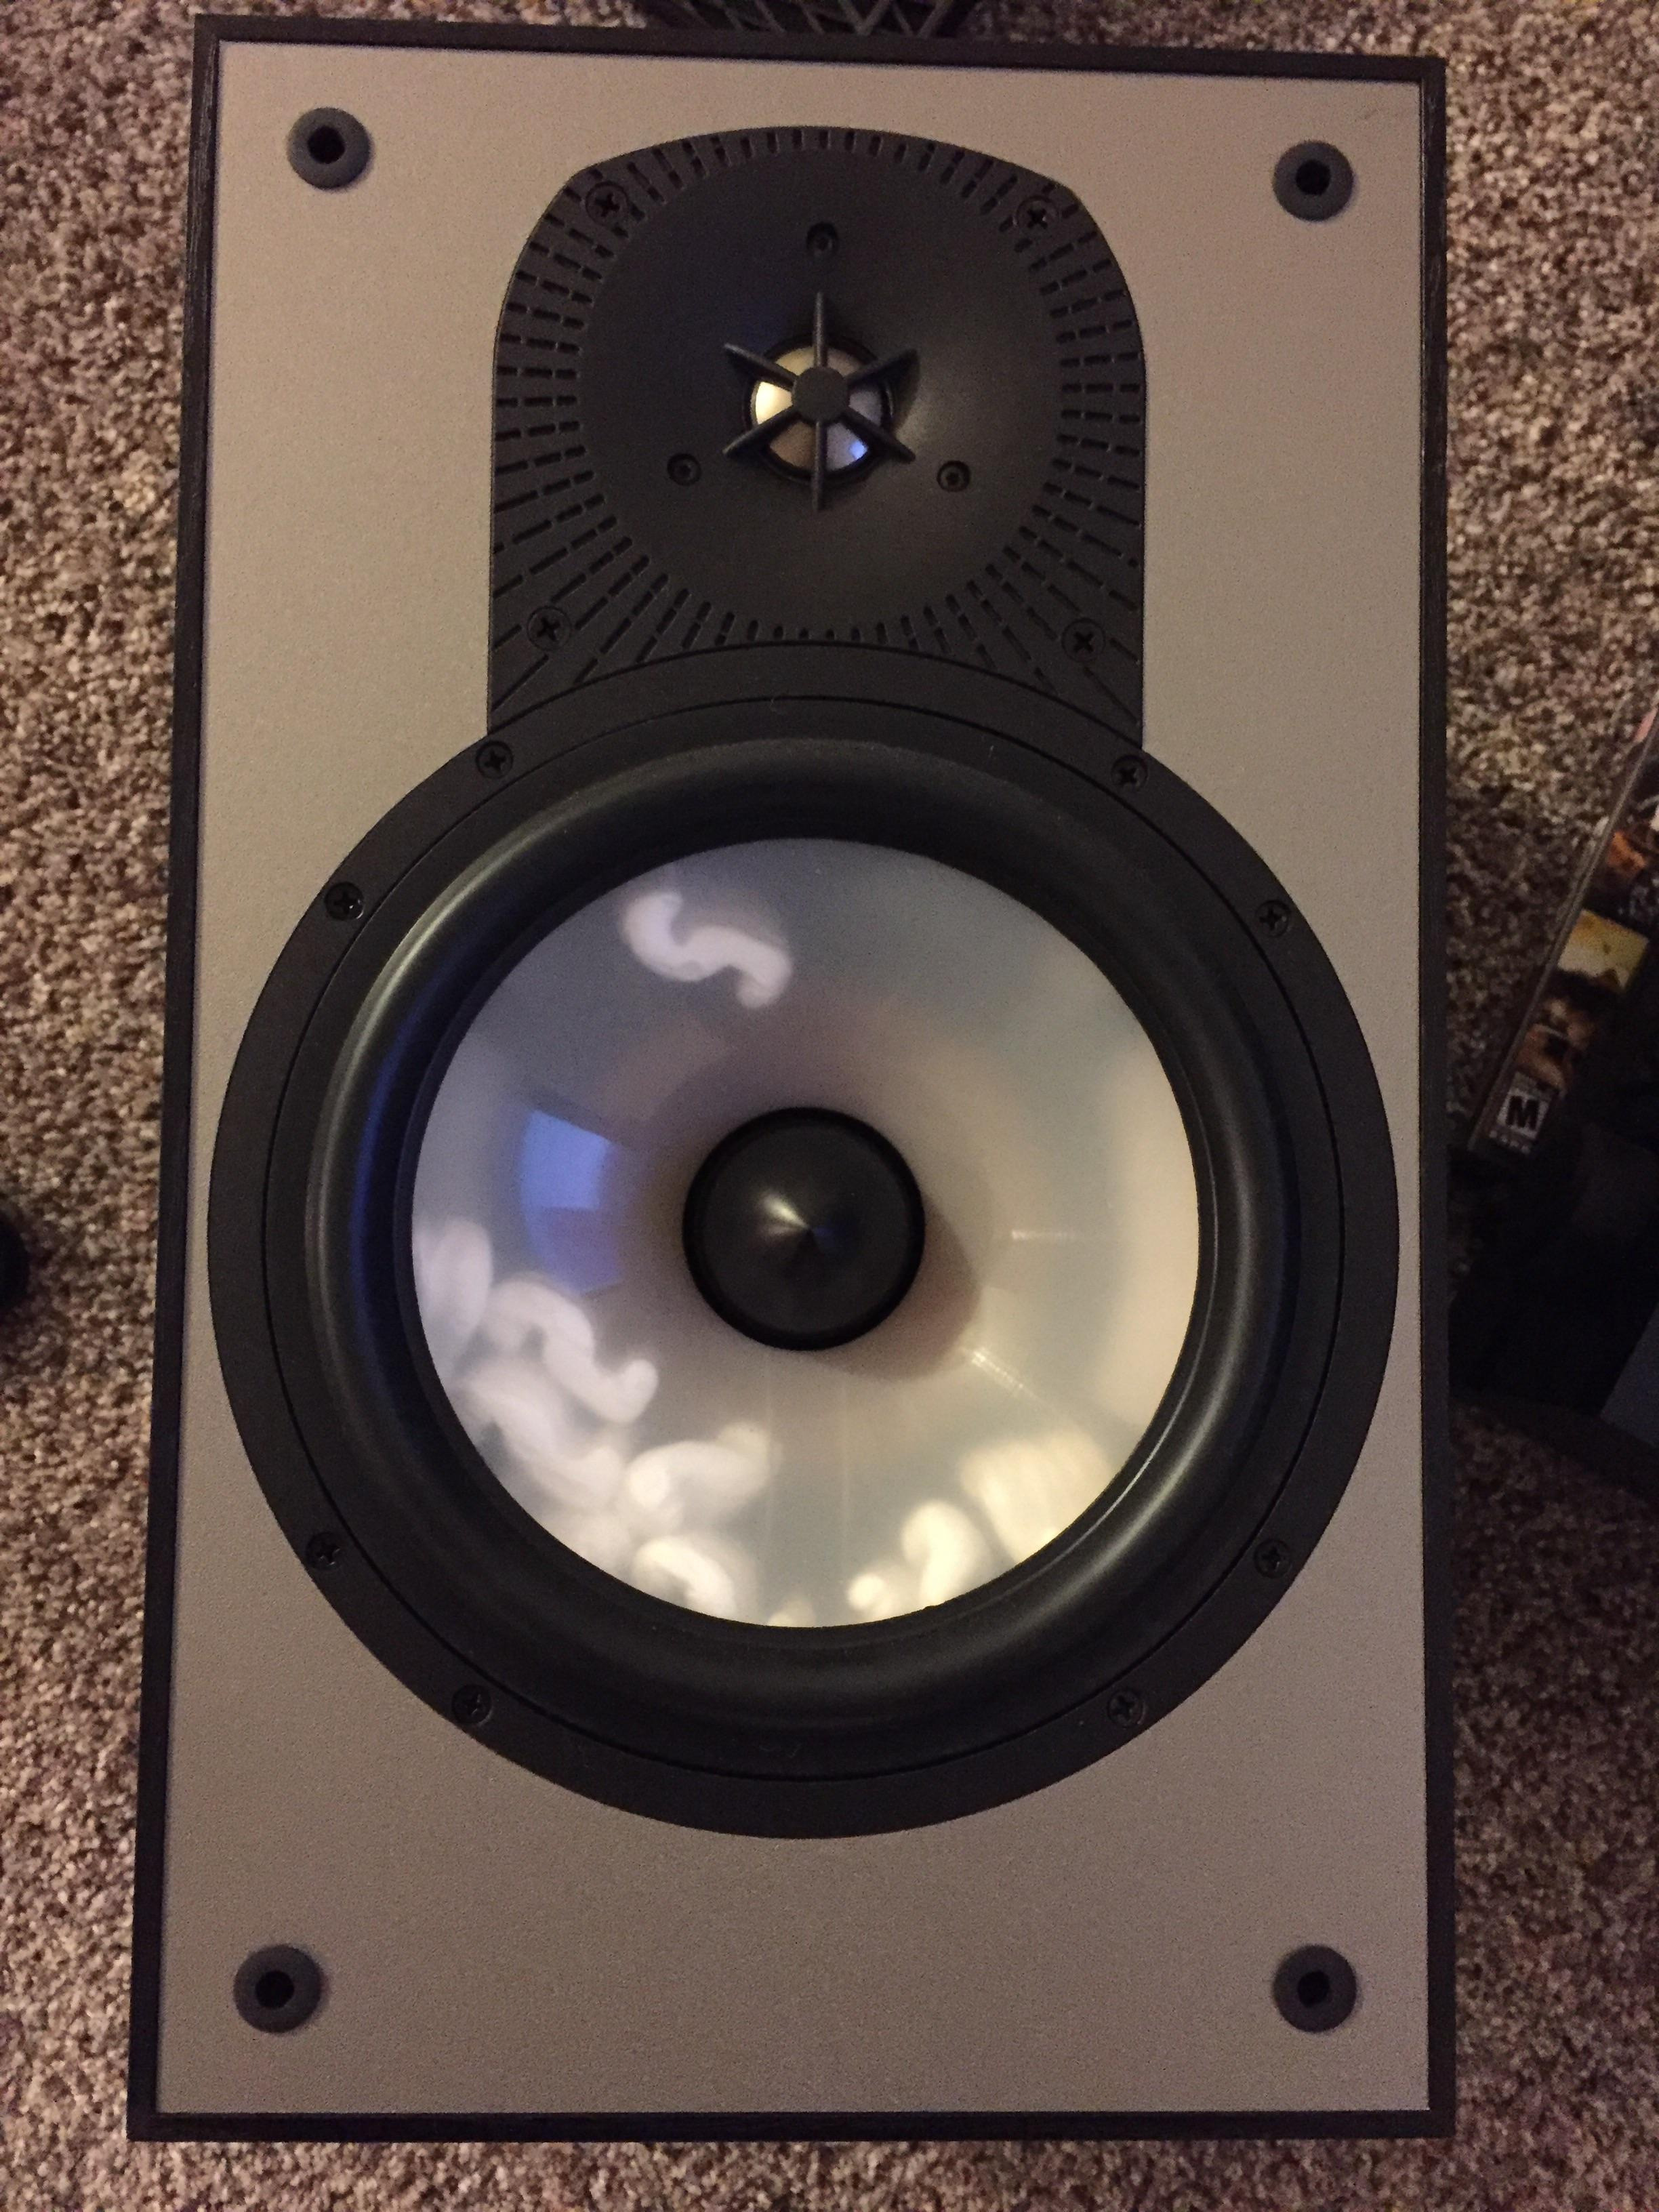 this speaker i bought on craigslist had packing